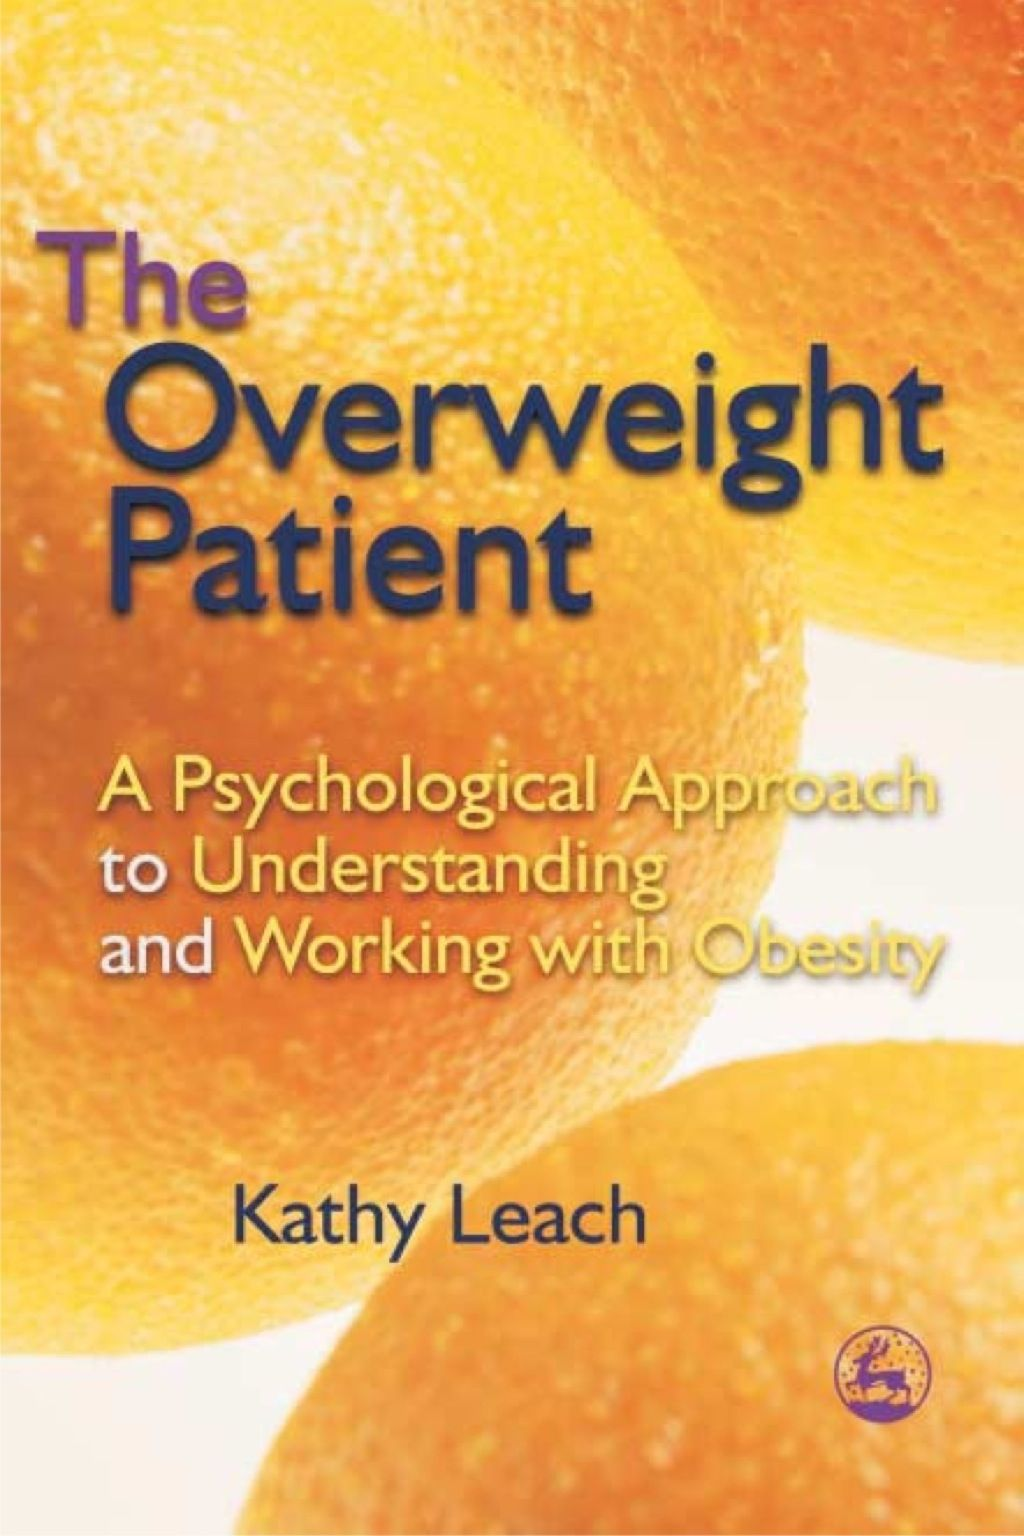 The Overweight Patient Ebook